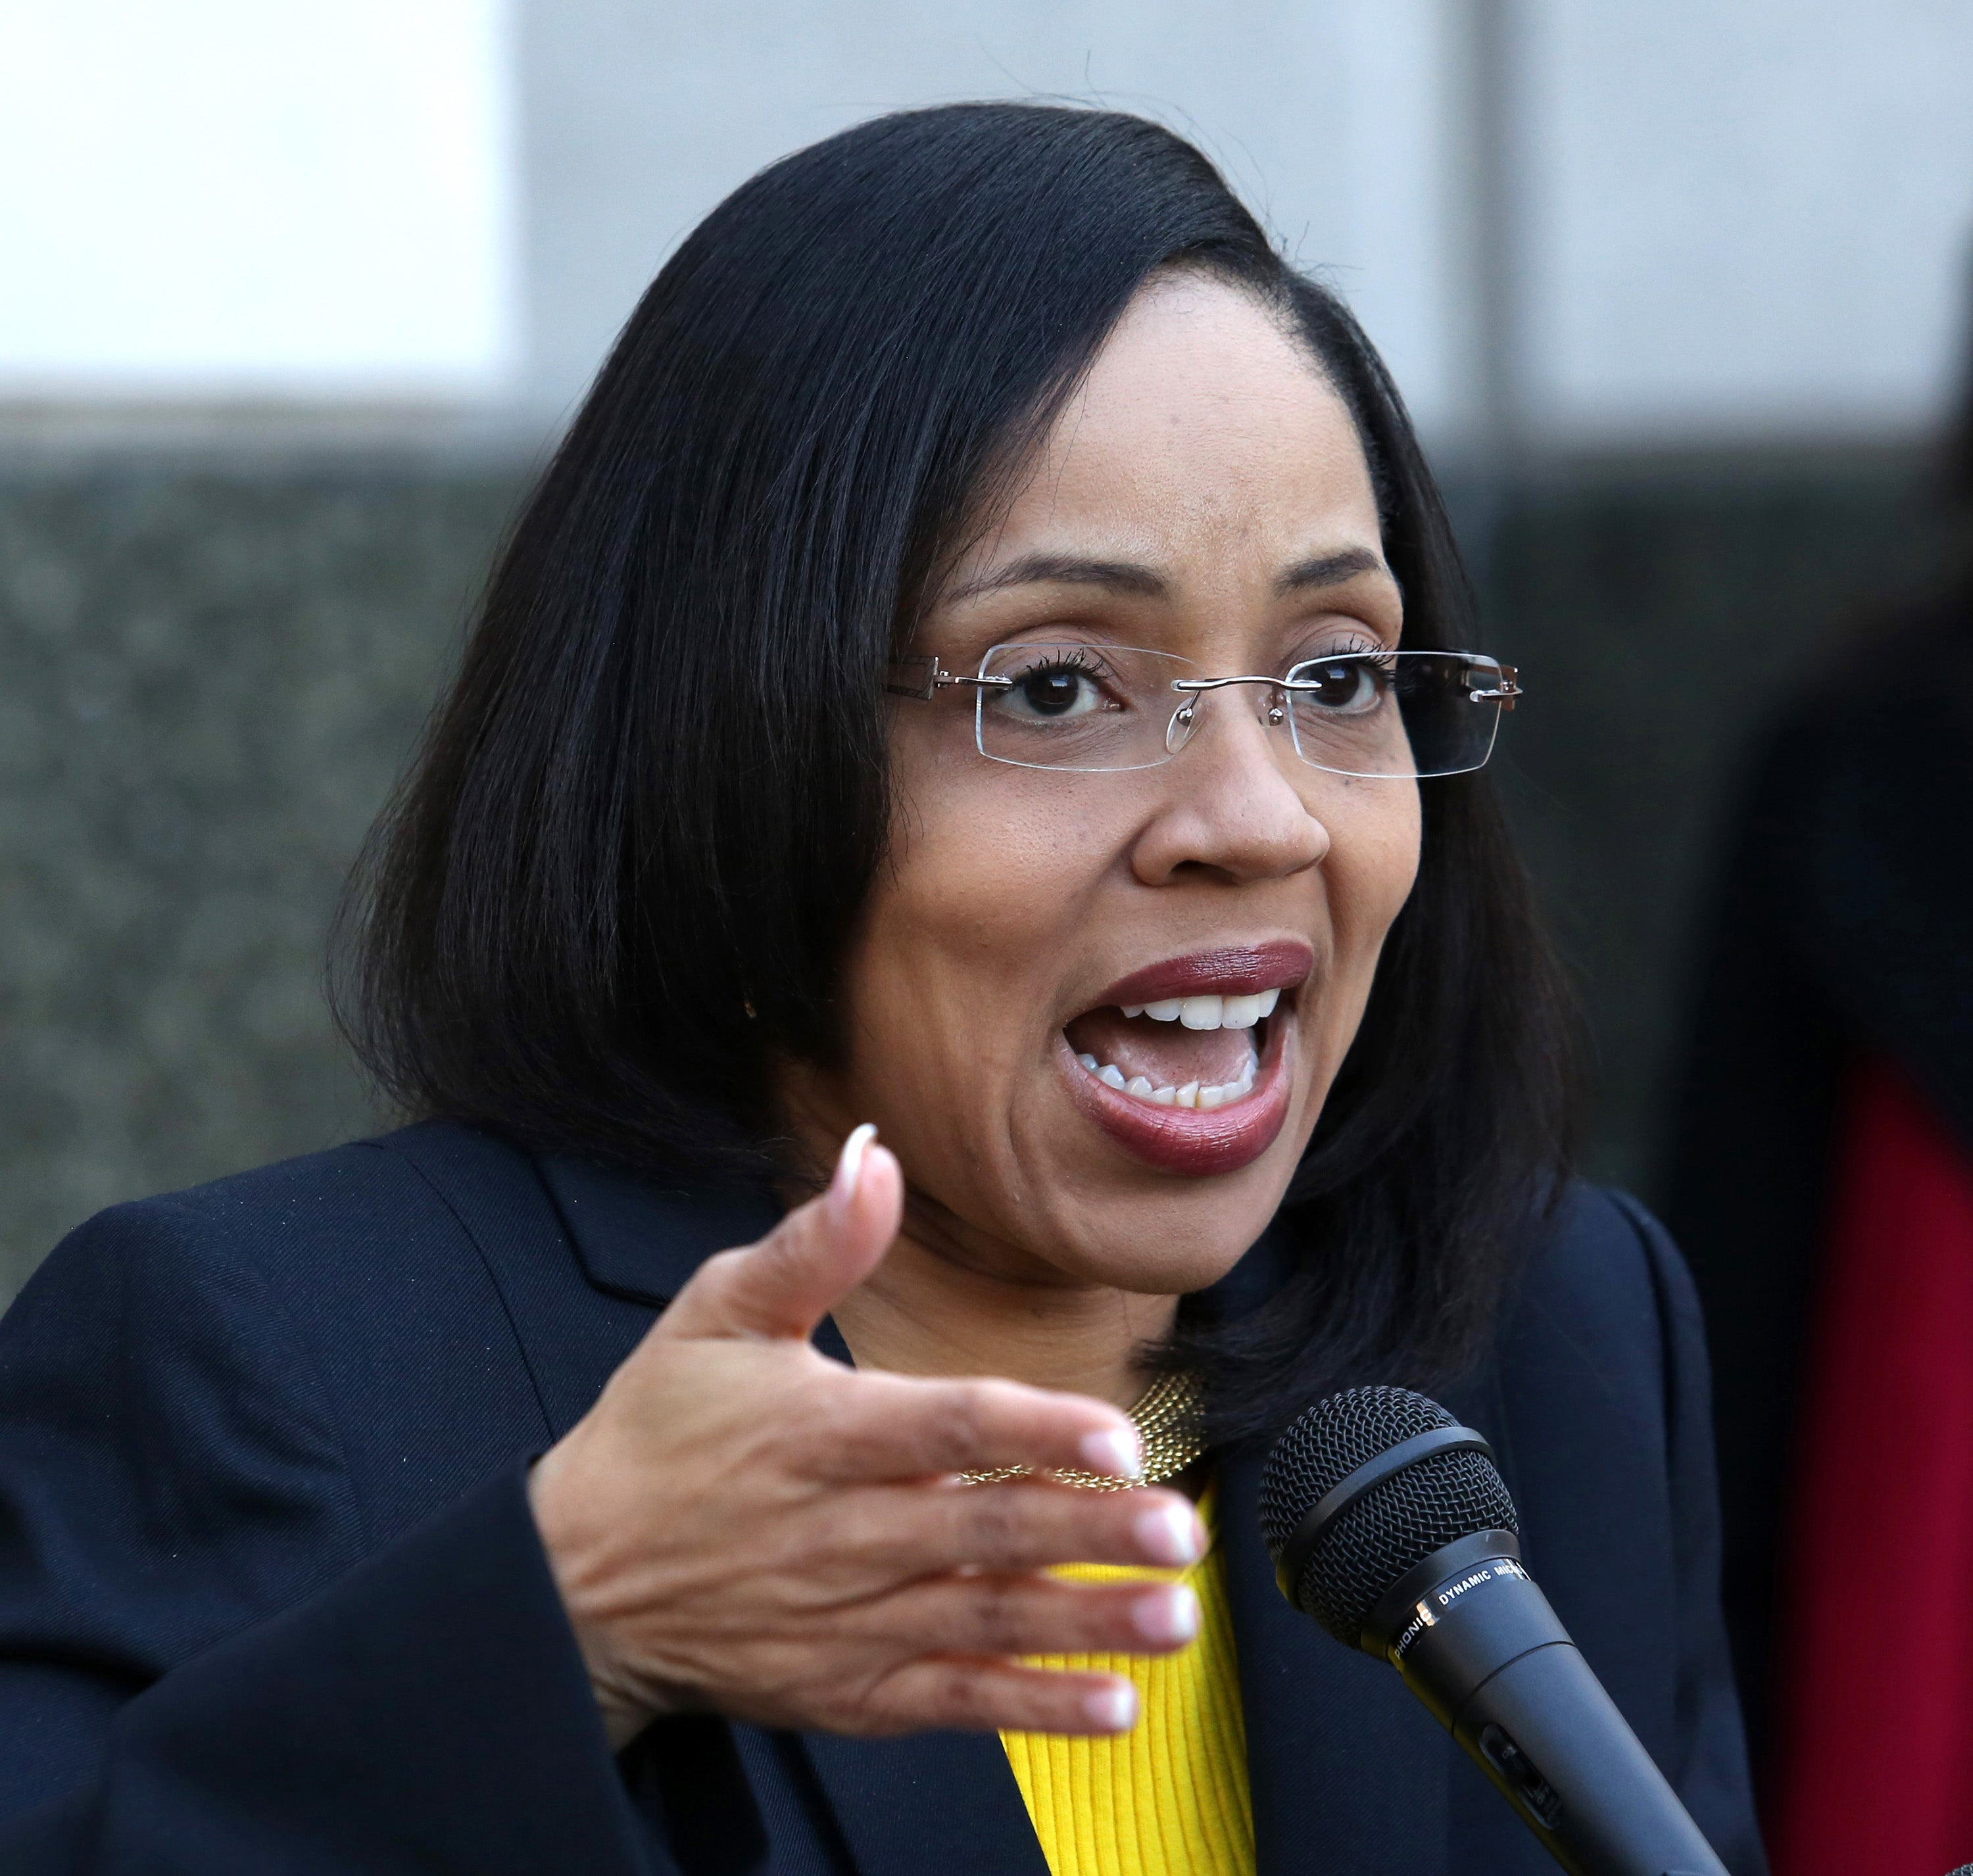 Was This Black State Attorney Racially Profiled By Traffic Police?